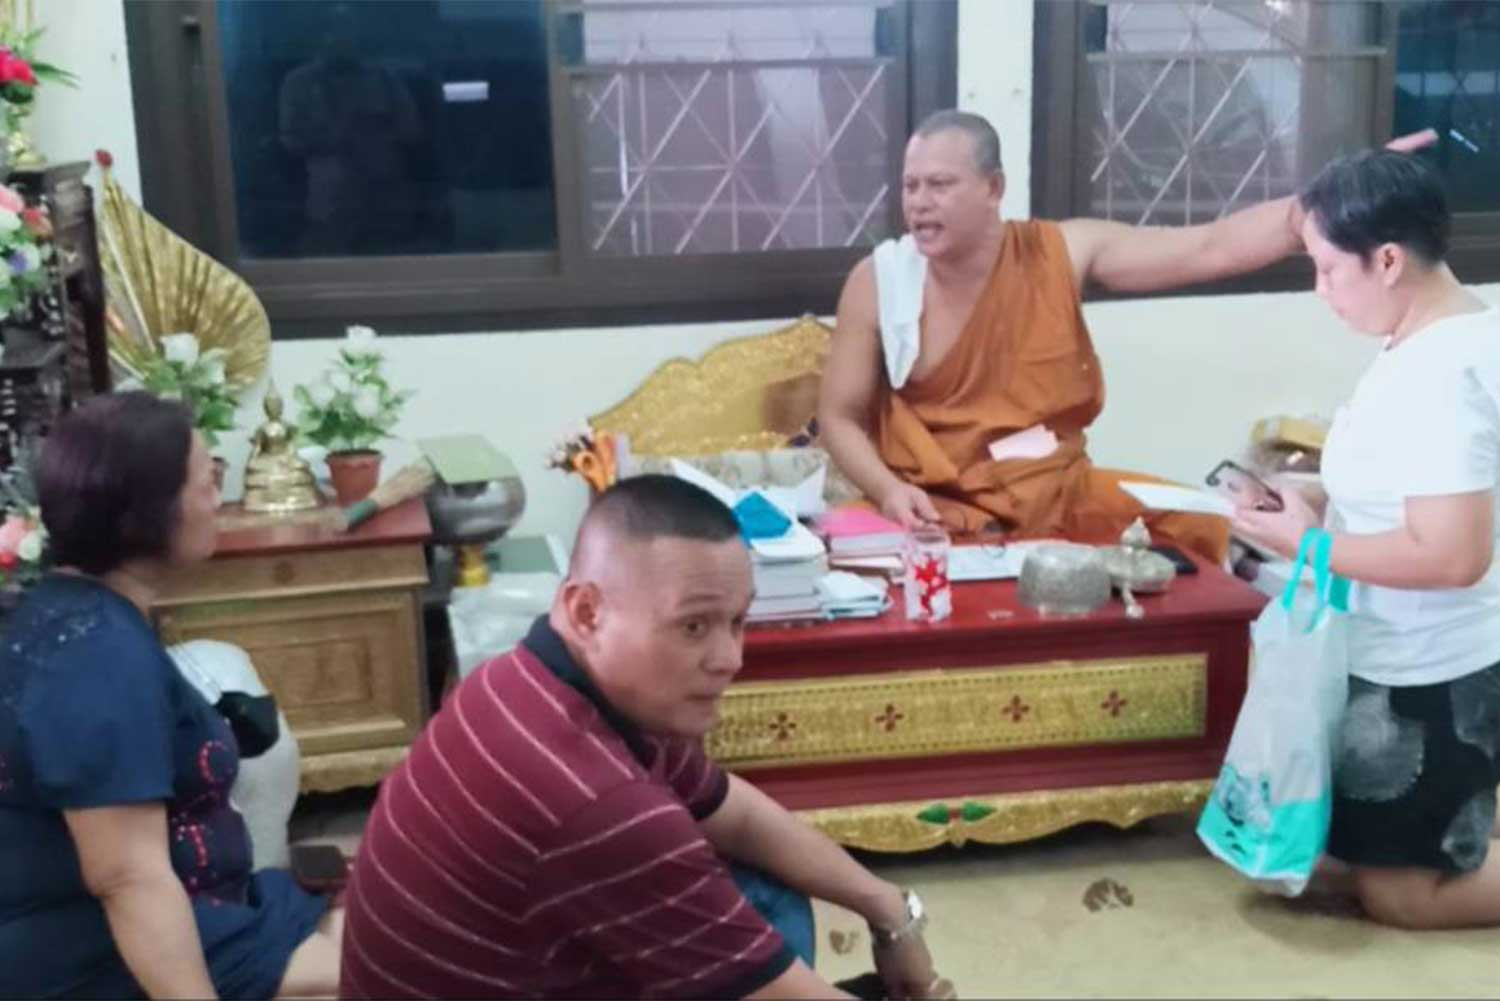 Phrakhru Phiphat Thampaneesilwitthatho, abbot of Wat Prathum Bucha in Prachin Buri's Sri Maha Phot district, tells local residents about the burglary at his living quarters in which more than 300,000 baht in cash and donated gems worth about 10 million baht had been stolen. (Photo by Manit Sanubboon)